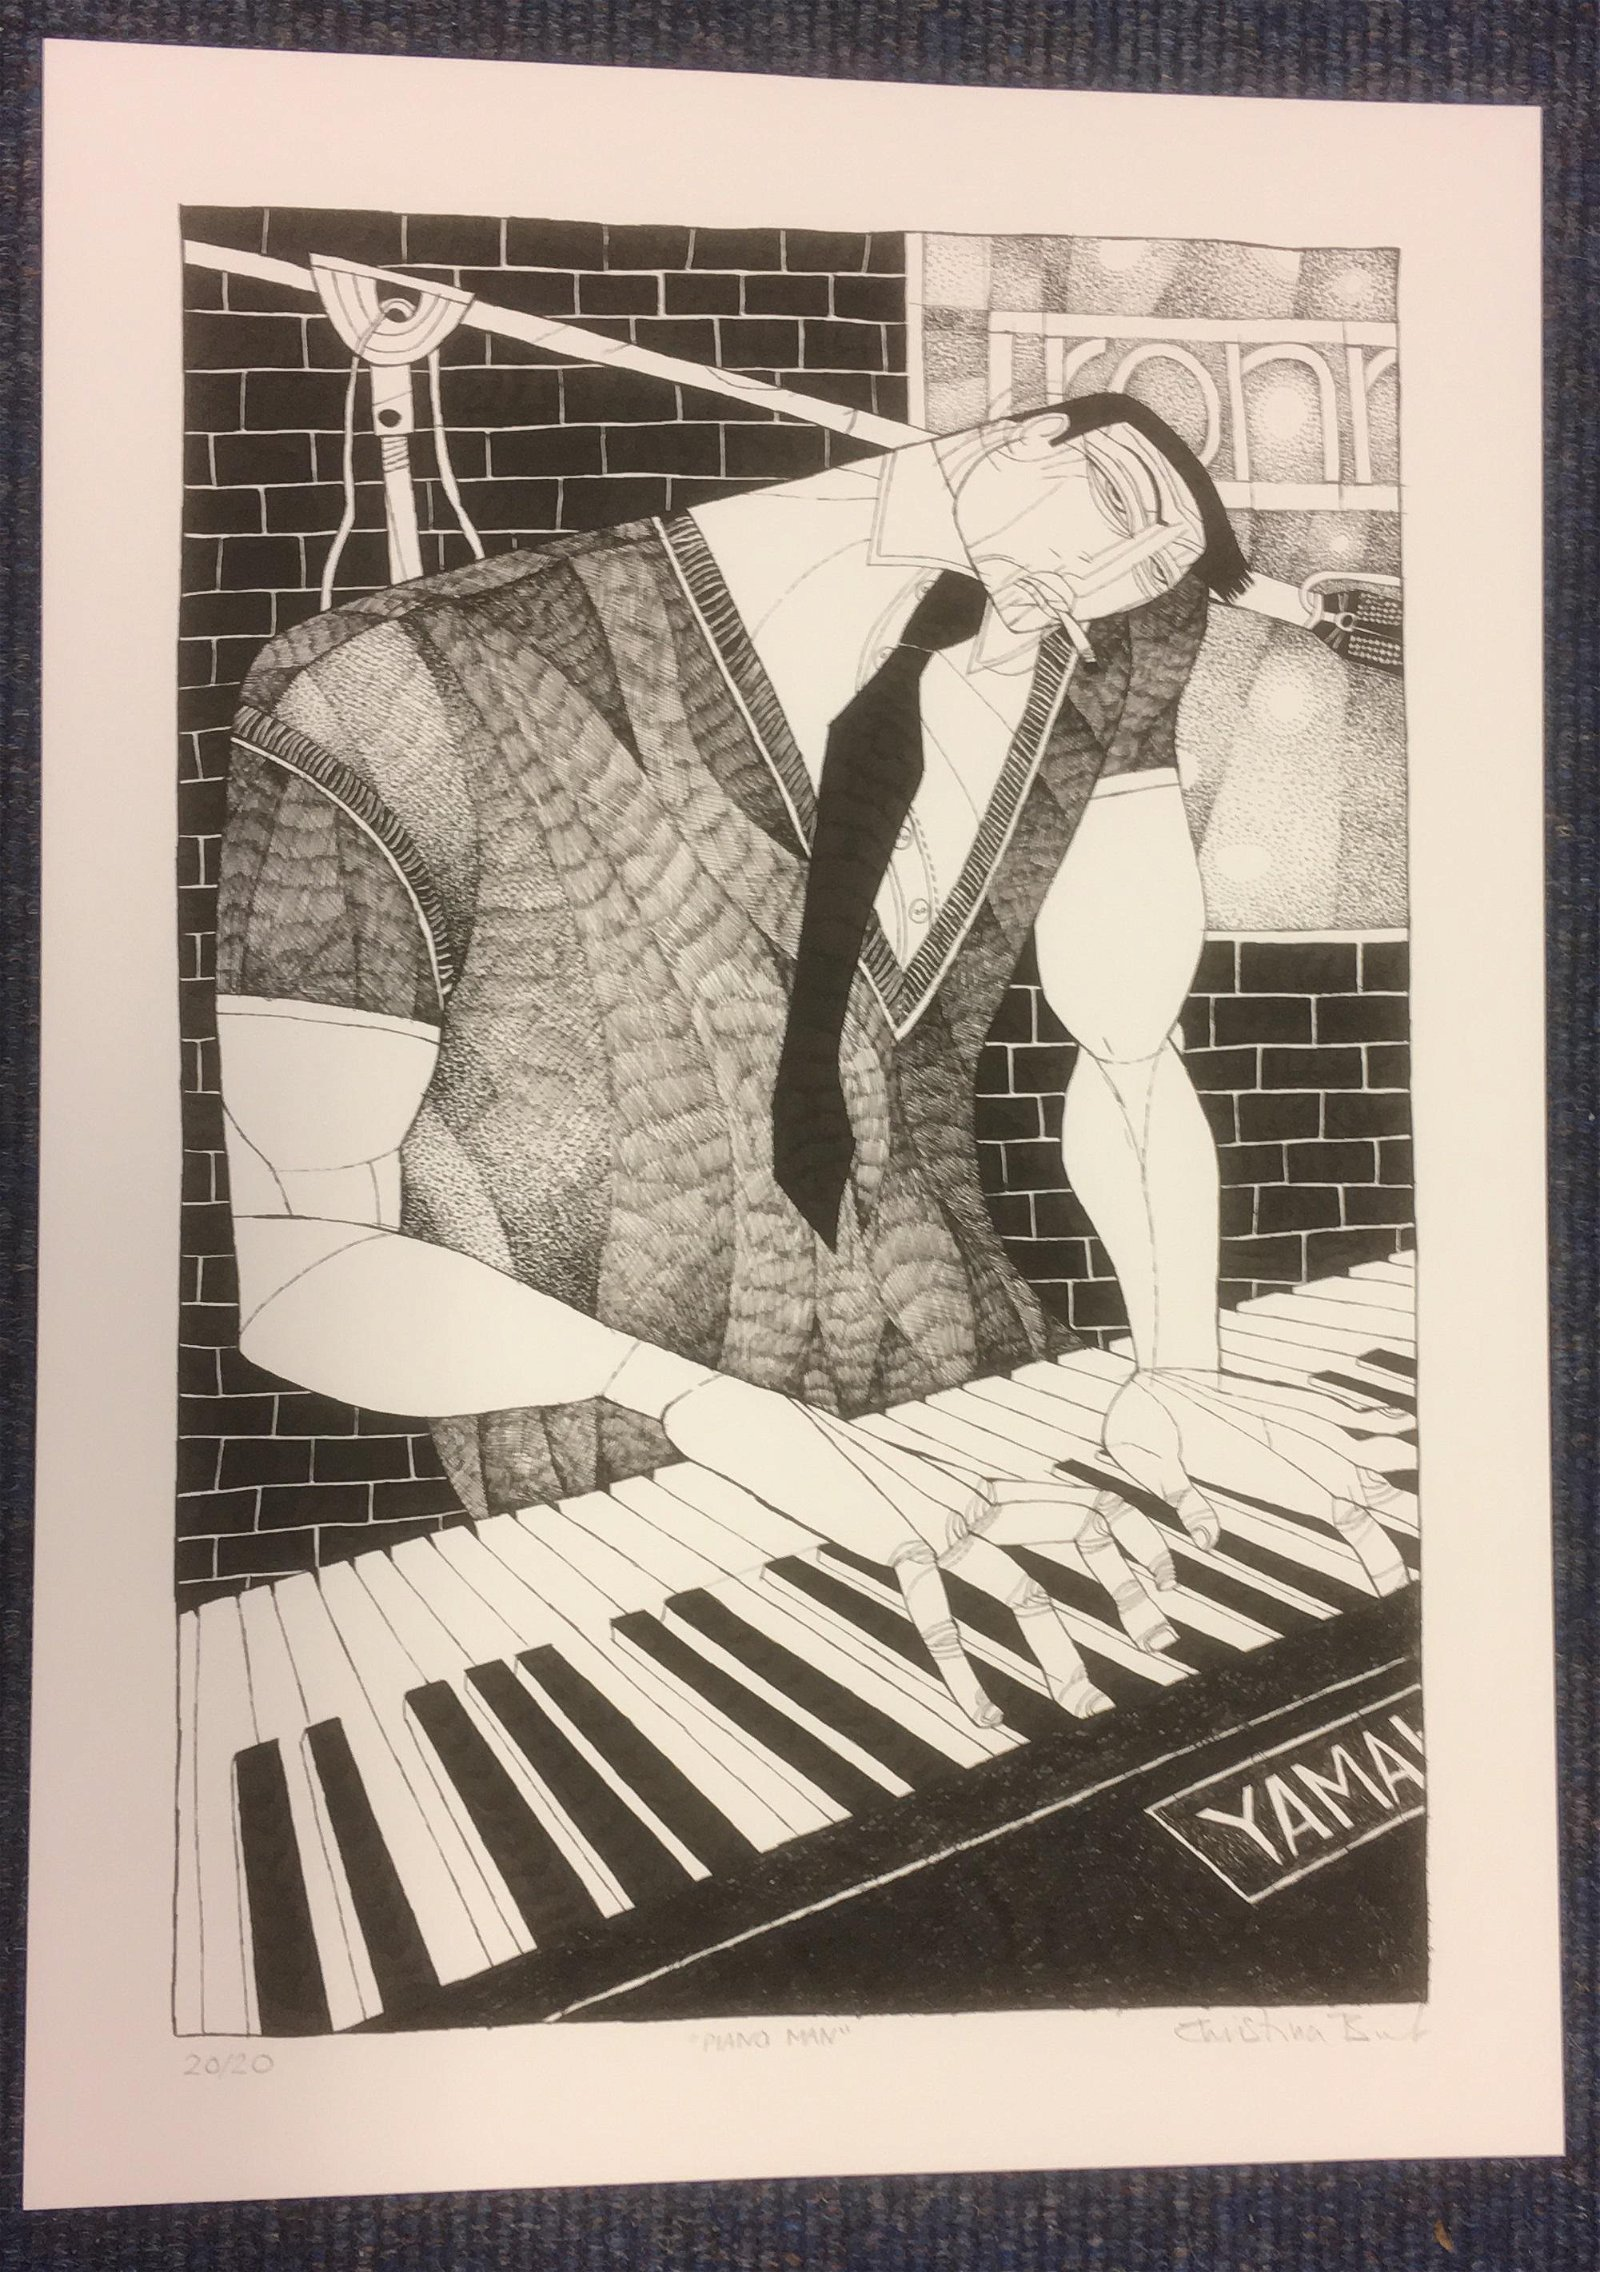 Piano Man rare signed music print by artist Christina